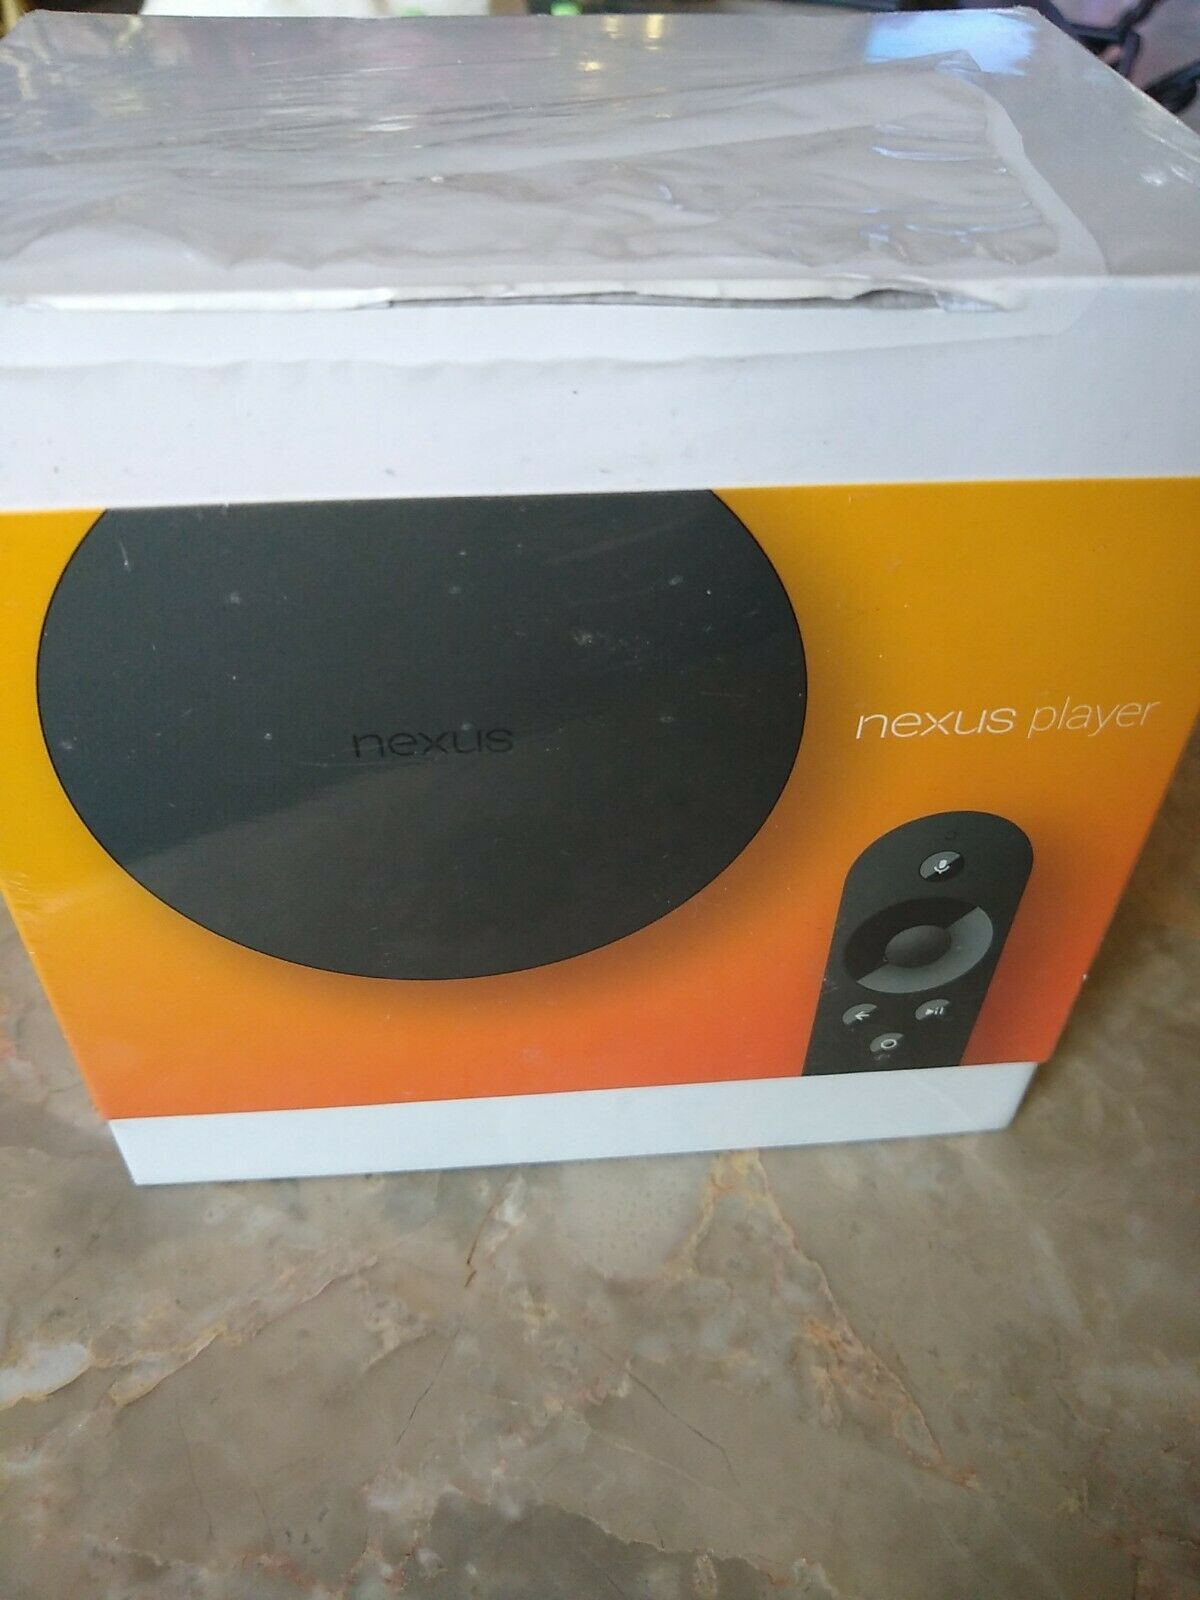 ASUS WiFi Nexus Player Streaming Media HD 1080p TV500I New Factory Sealed free s 1080p asus factory media new nexus player streaming tv500i wifi